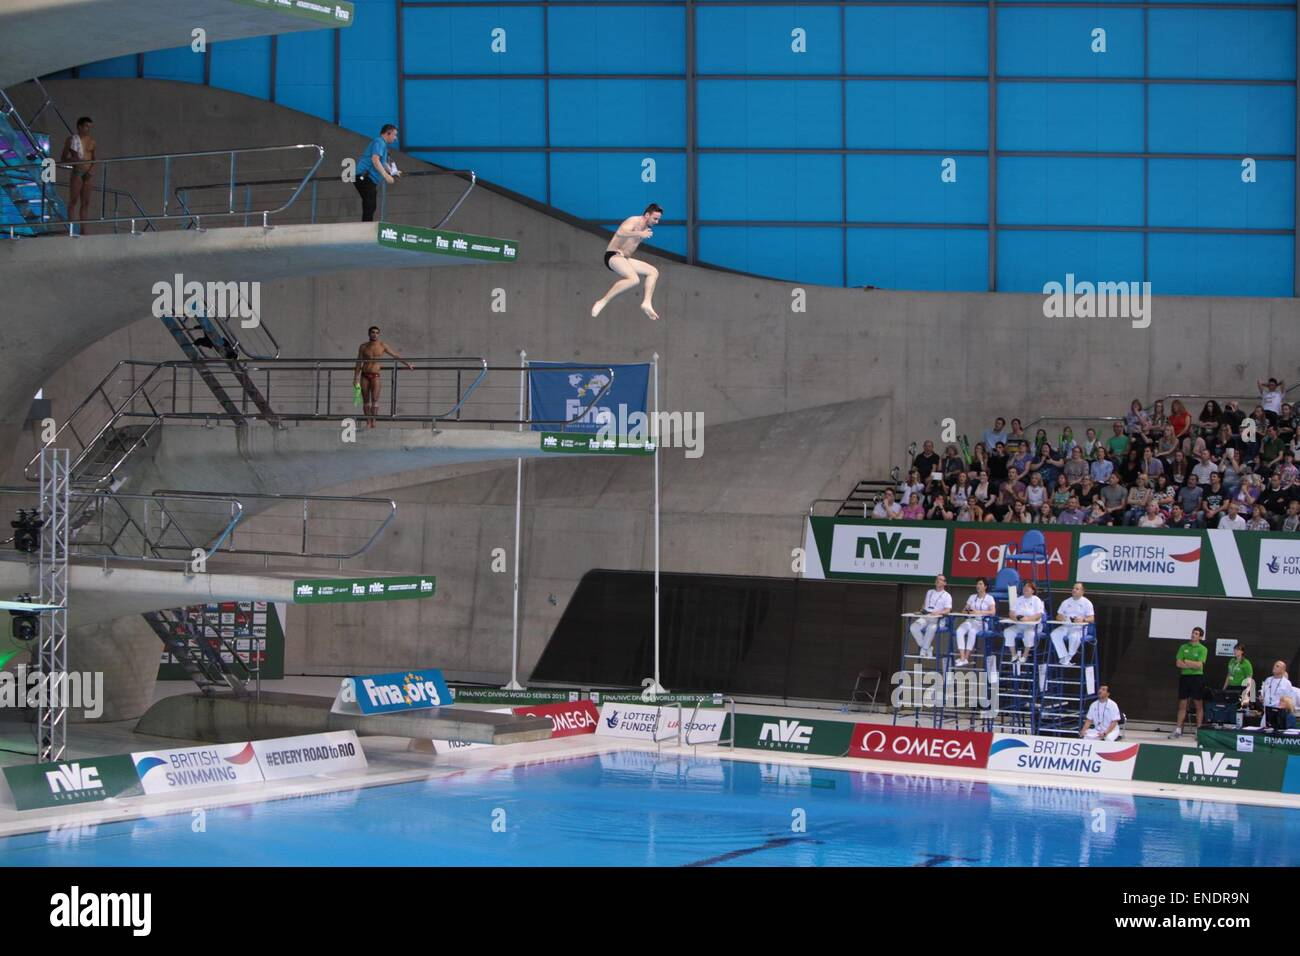 London, UK  3rd May, 2015  A man rushed onto the 10m Platform and